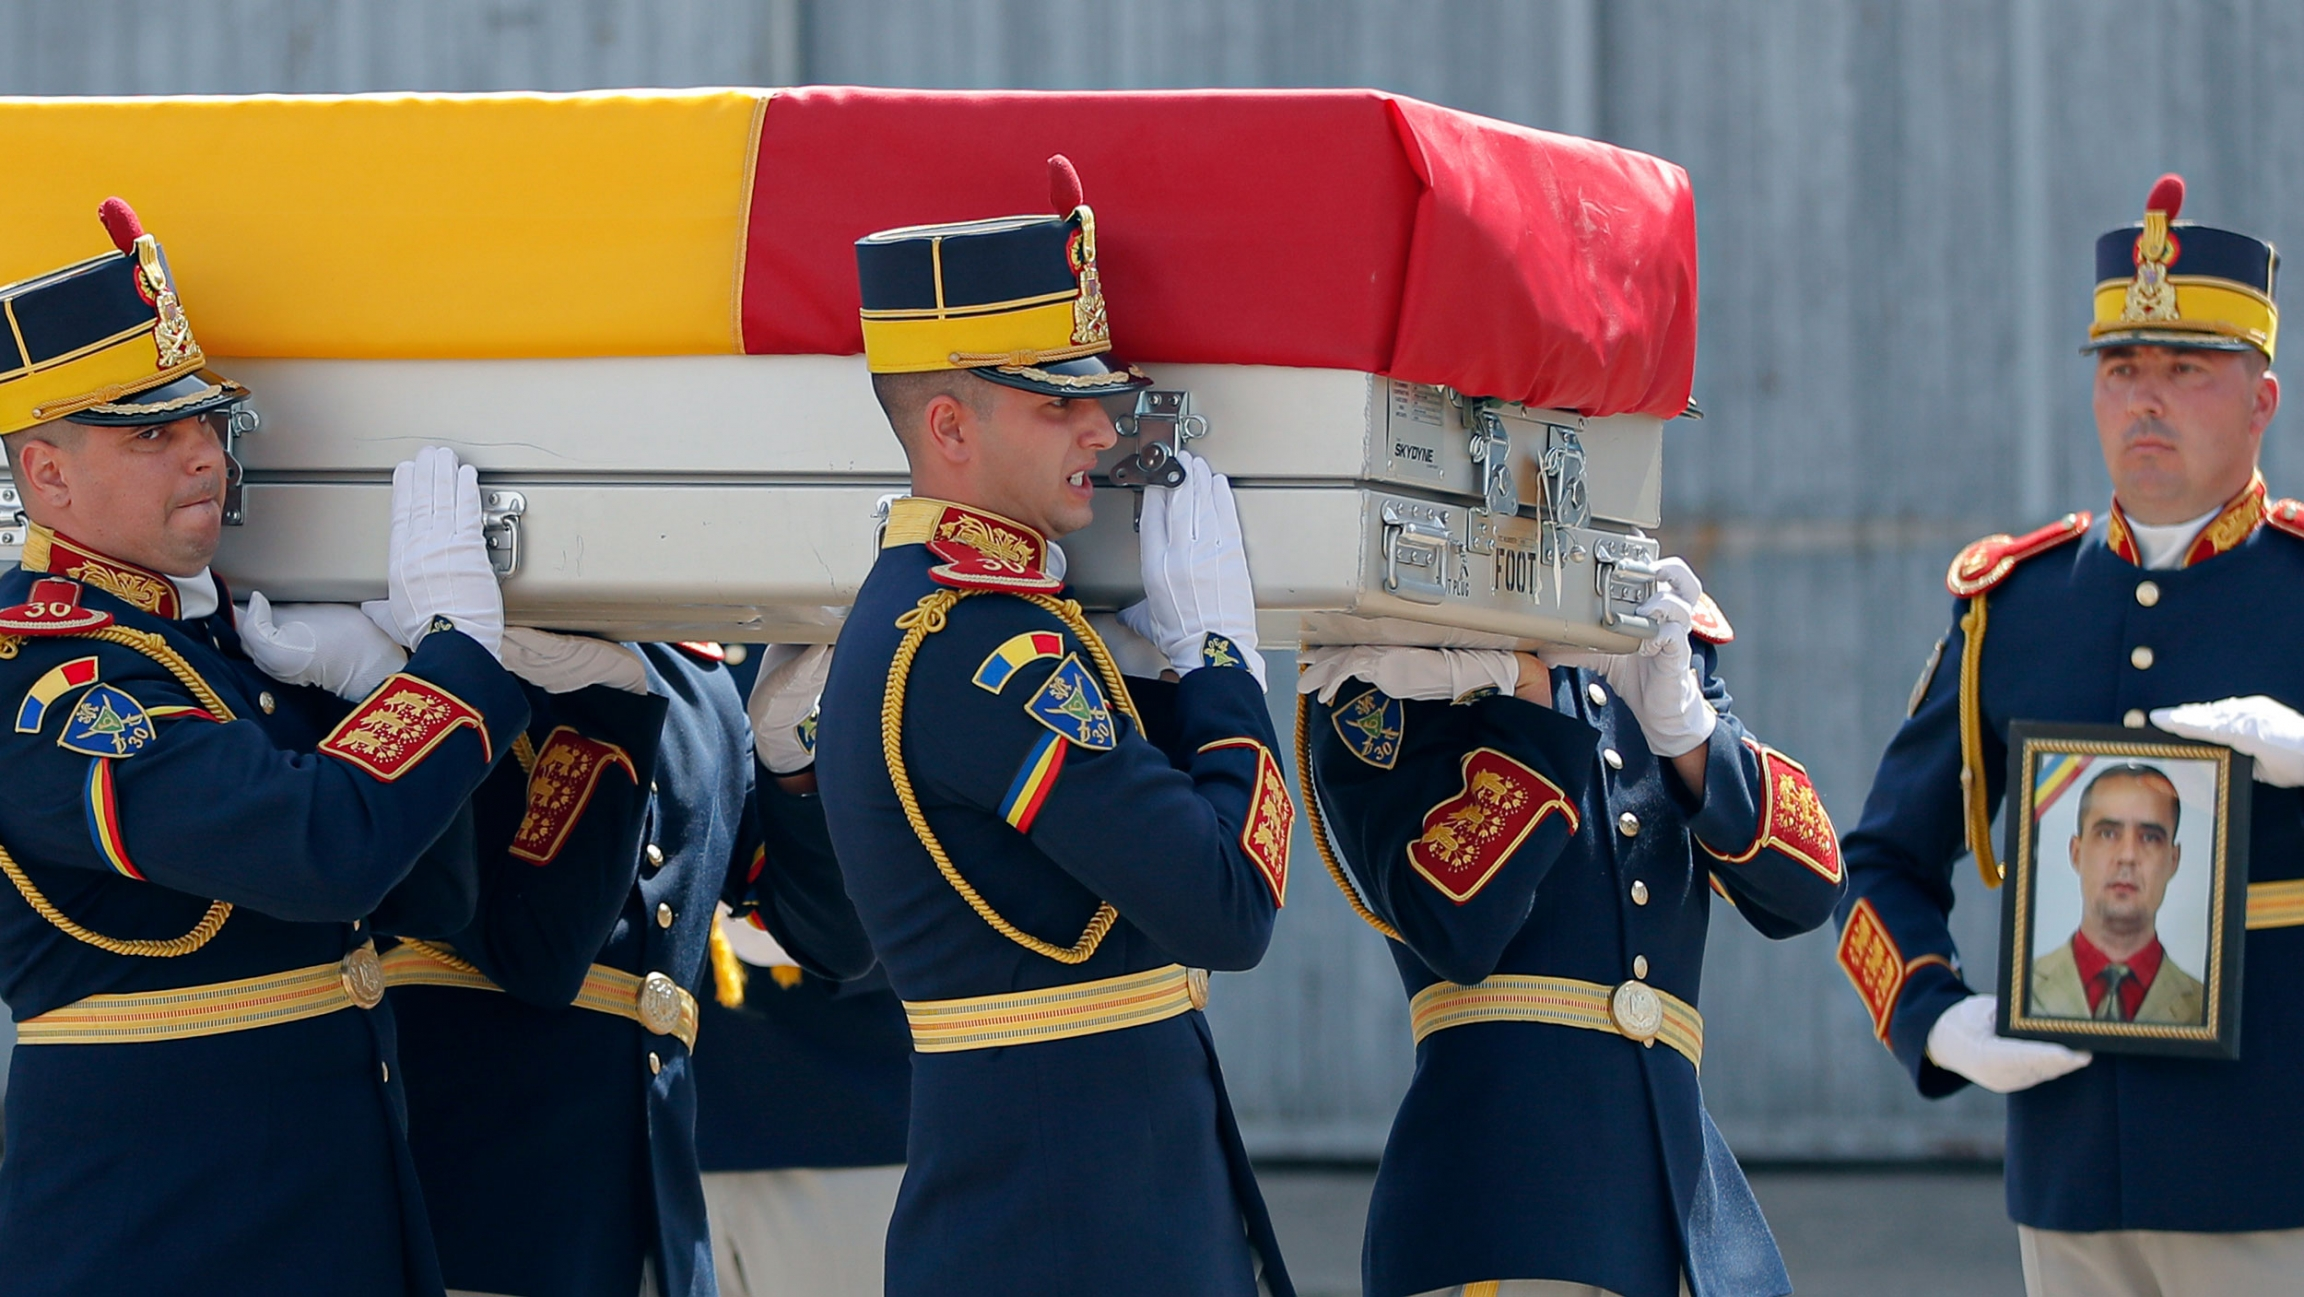 Honor guard soldiers carry the coffin of Vasile Raduna, seen in the photo on the right, during the ceremony for the repatriation his and of Corp. Ciprian-Stefan Polschi's body from Afghanistan, in Bucharest, Romania, Tuesday, Sept. 10, 2019.